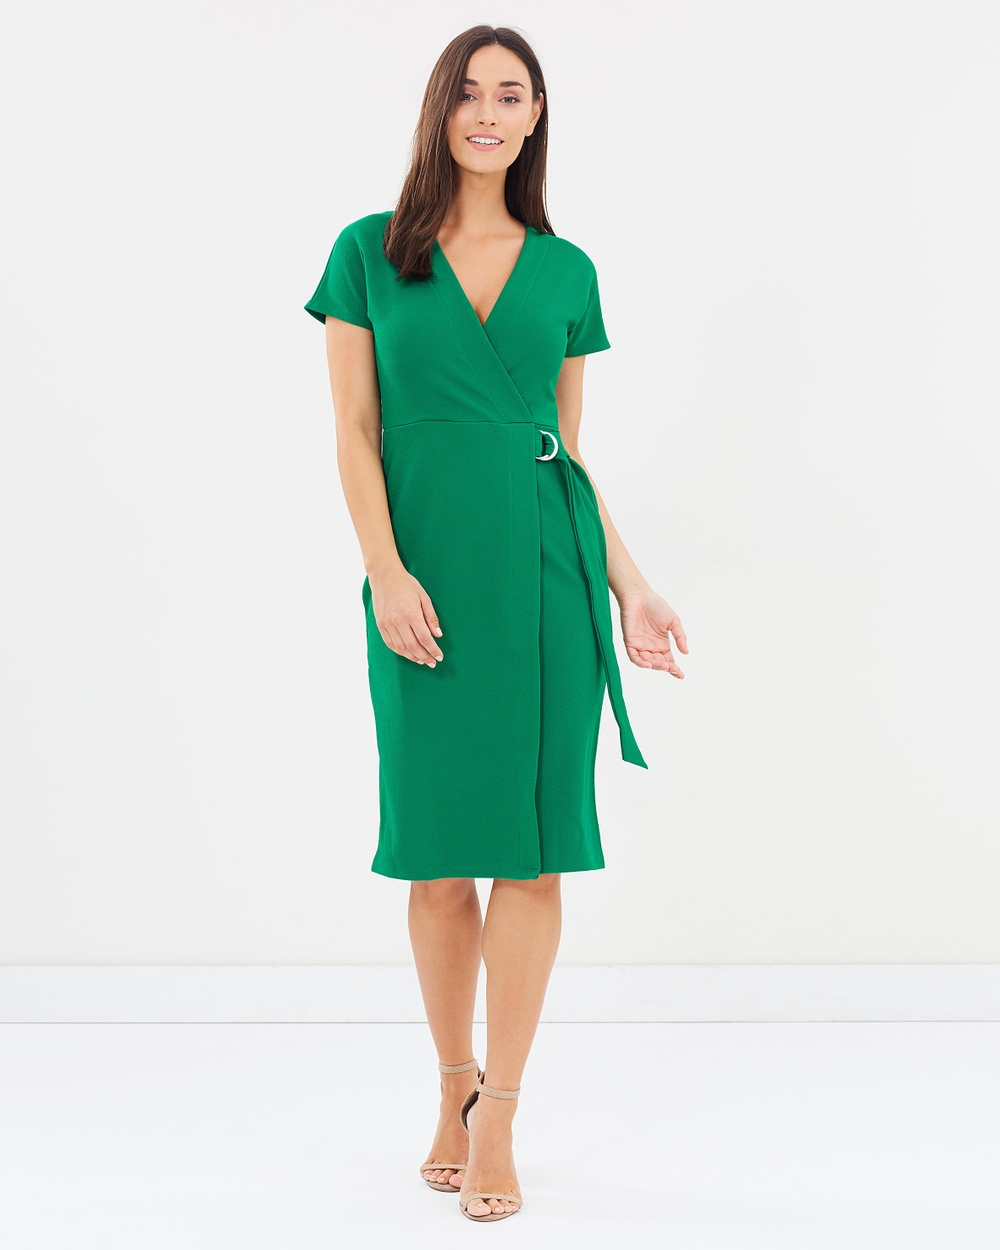 Photo of Dorothy Perkins Dorothy Perkins Wrap Dress Dresses Emerald Wrap Dress - Renowned for feminine style and accessibility, Dorothy Perkins has carved an inimitable reputation as one of the UK's leading fashion brands. From darling day dresses to chic winter coats, you'll elevate any ensemble with a Dorothy Perkins design. Our model is wearing a size UK8 dress. She is 170cm (5'7